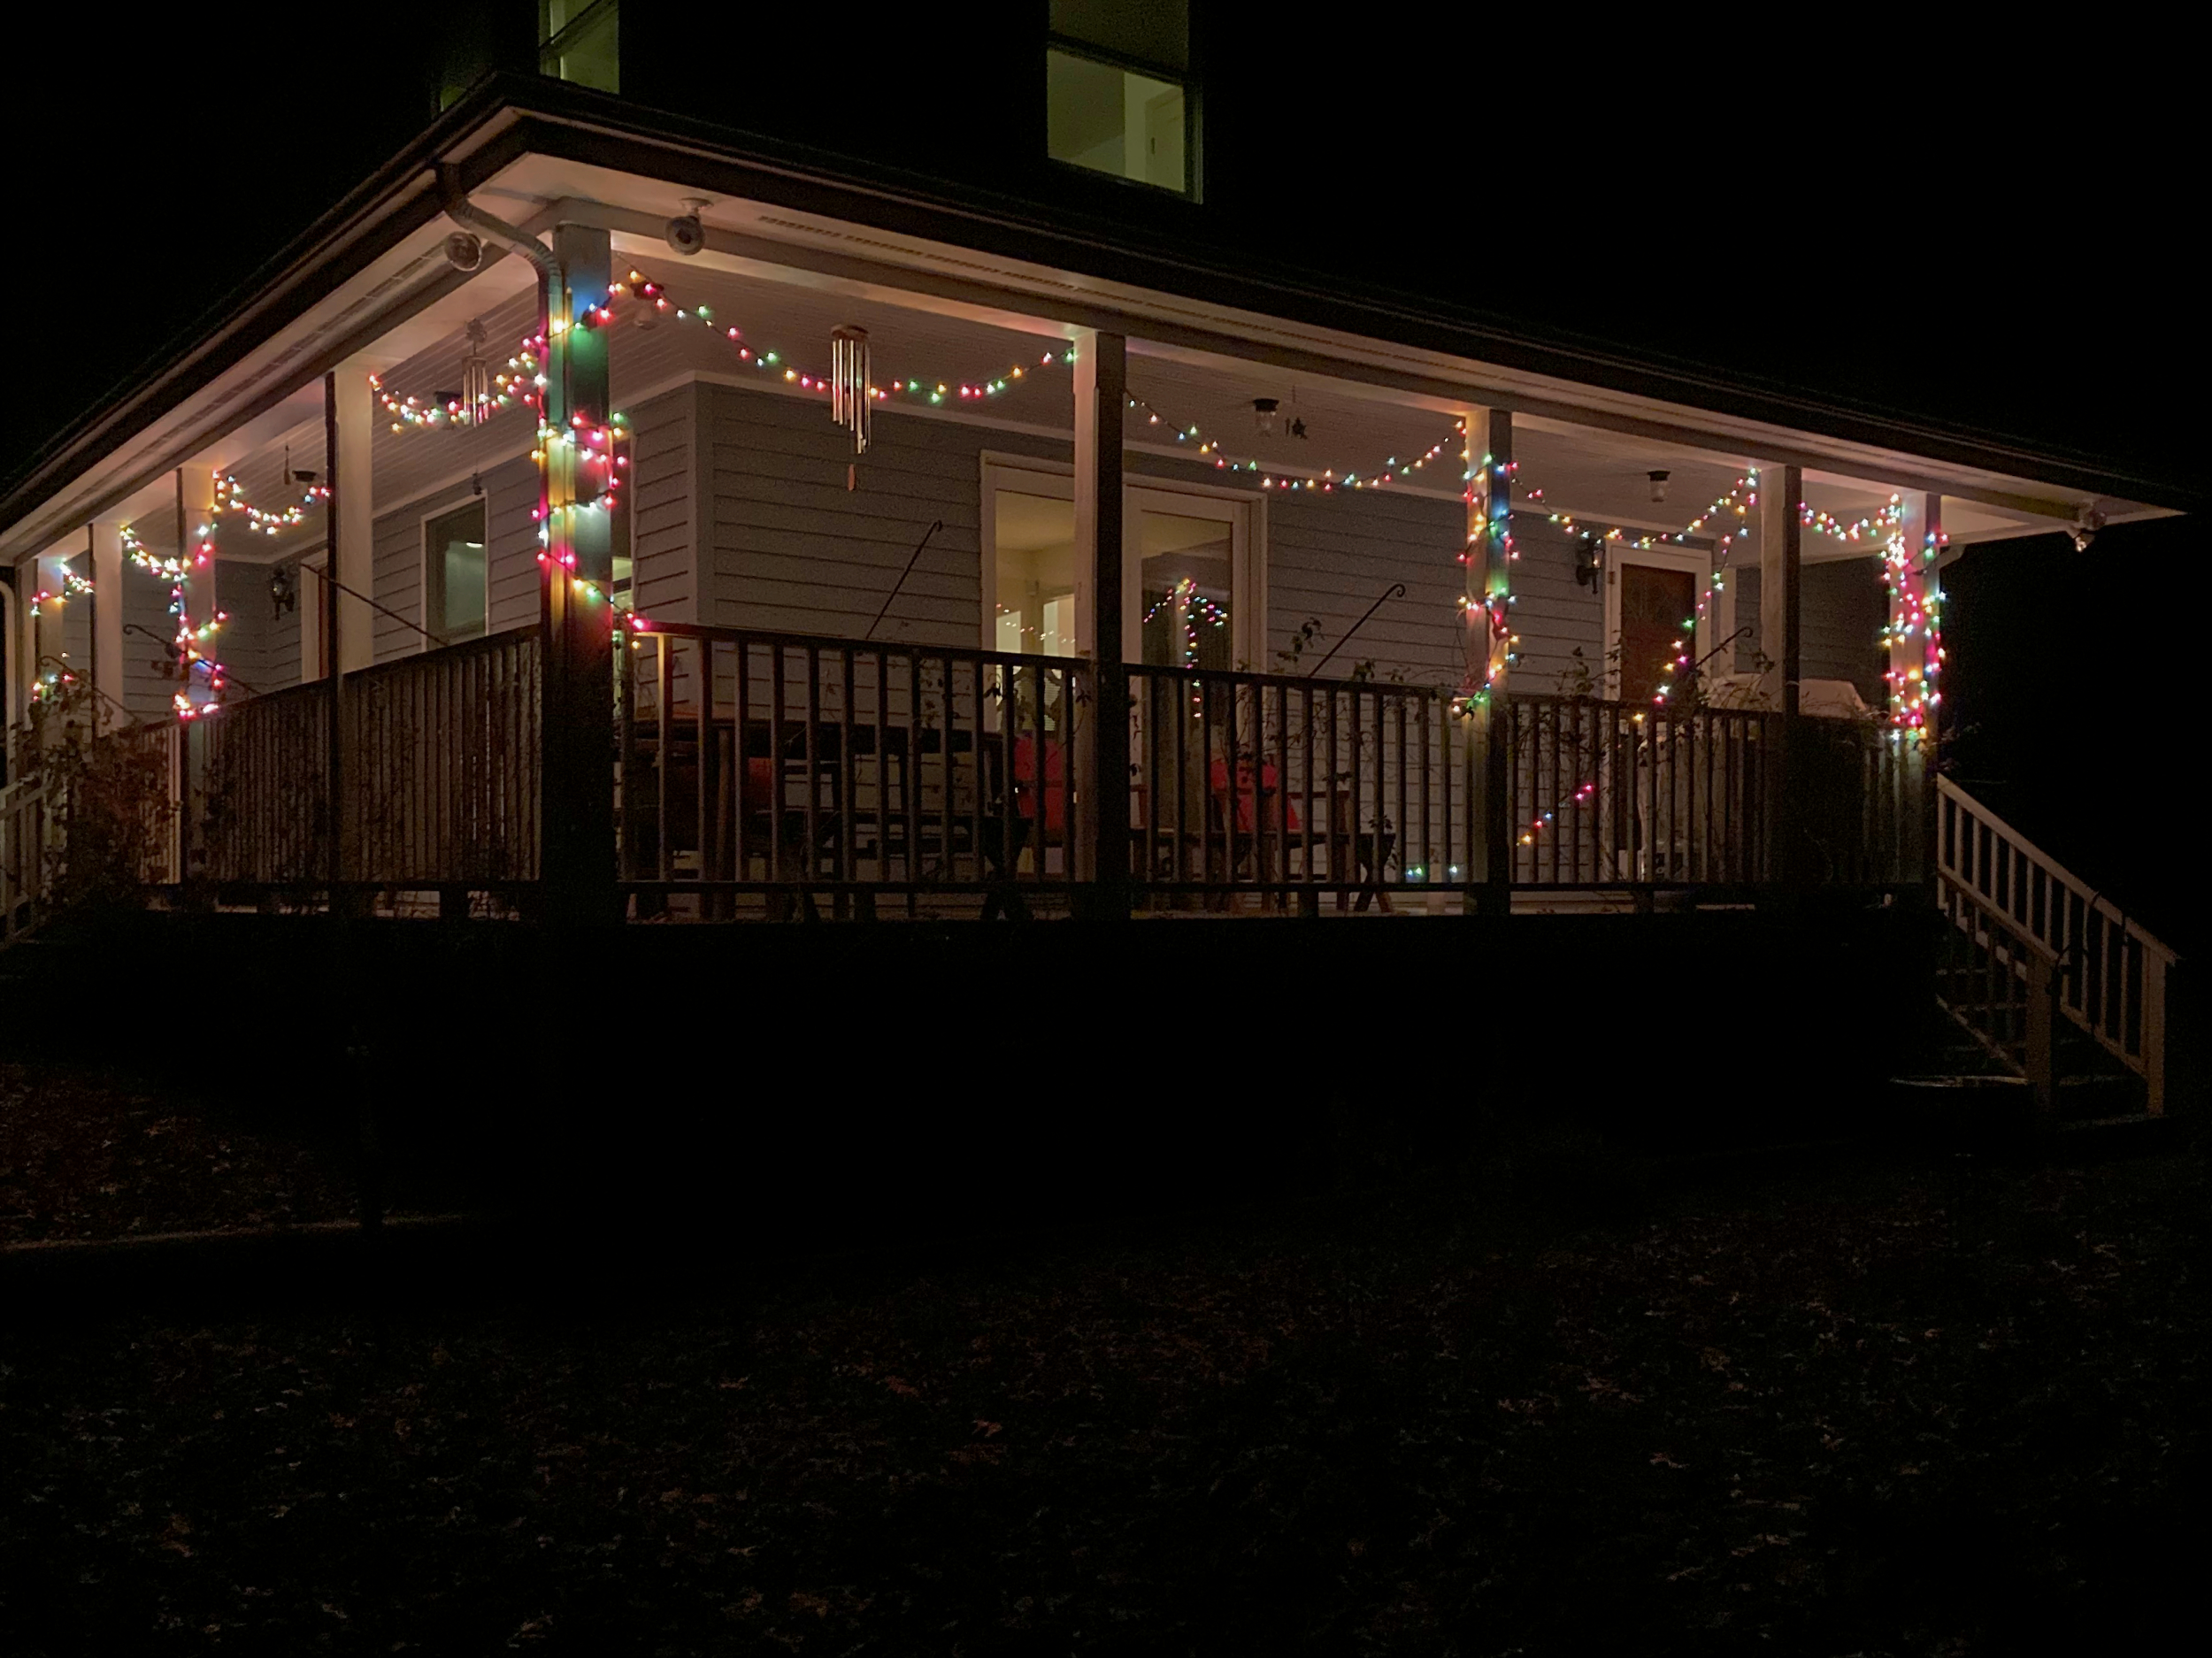 Christmas Lights on the House, by David B. Coe